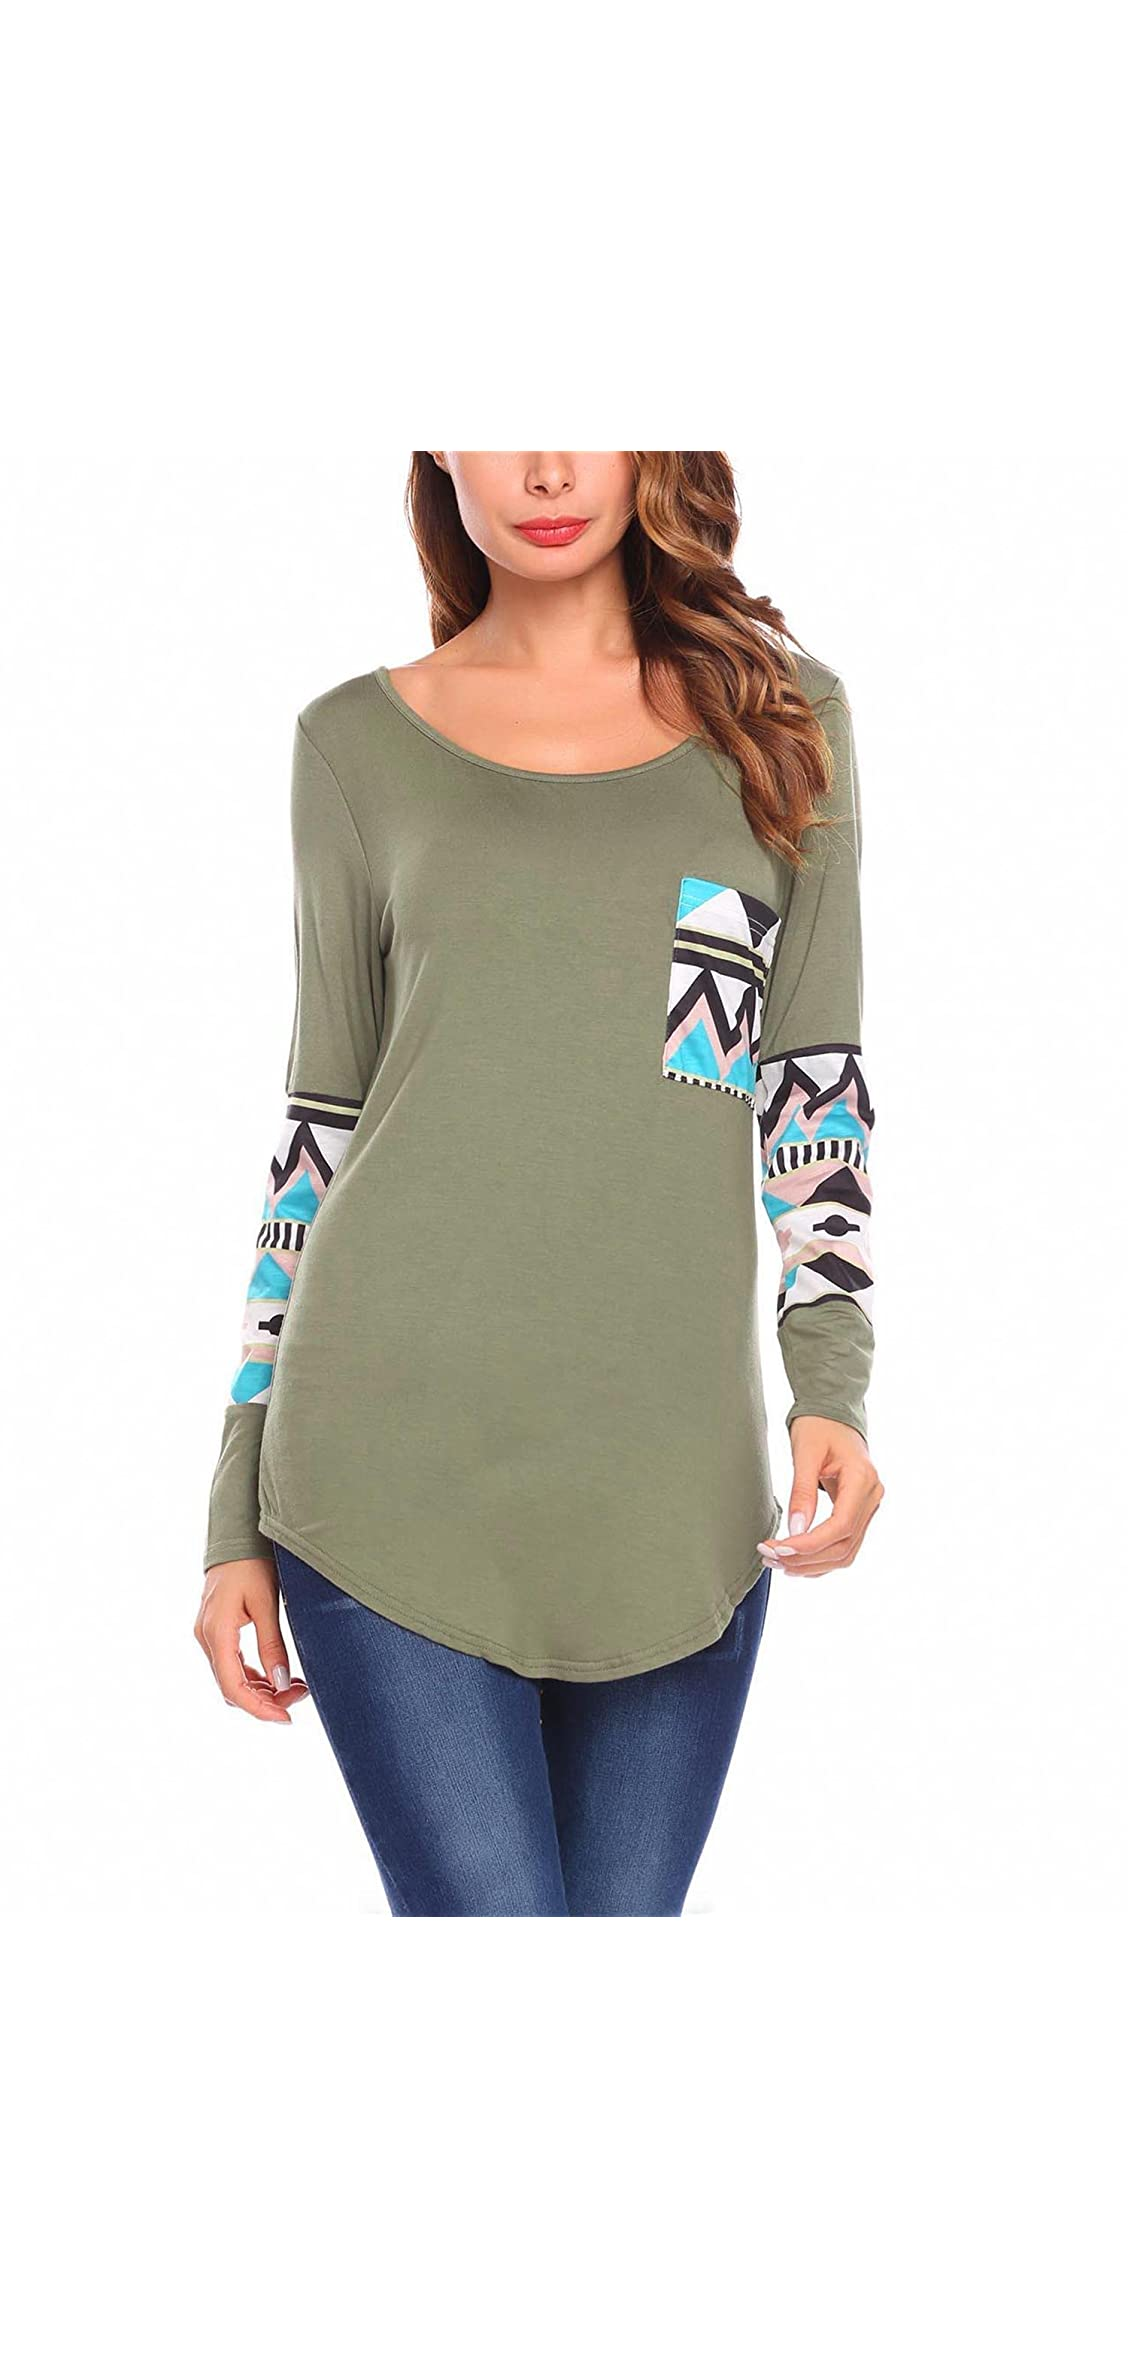 Women's Long Sleeve Graphic Print Patchwork Casual